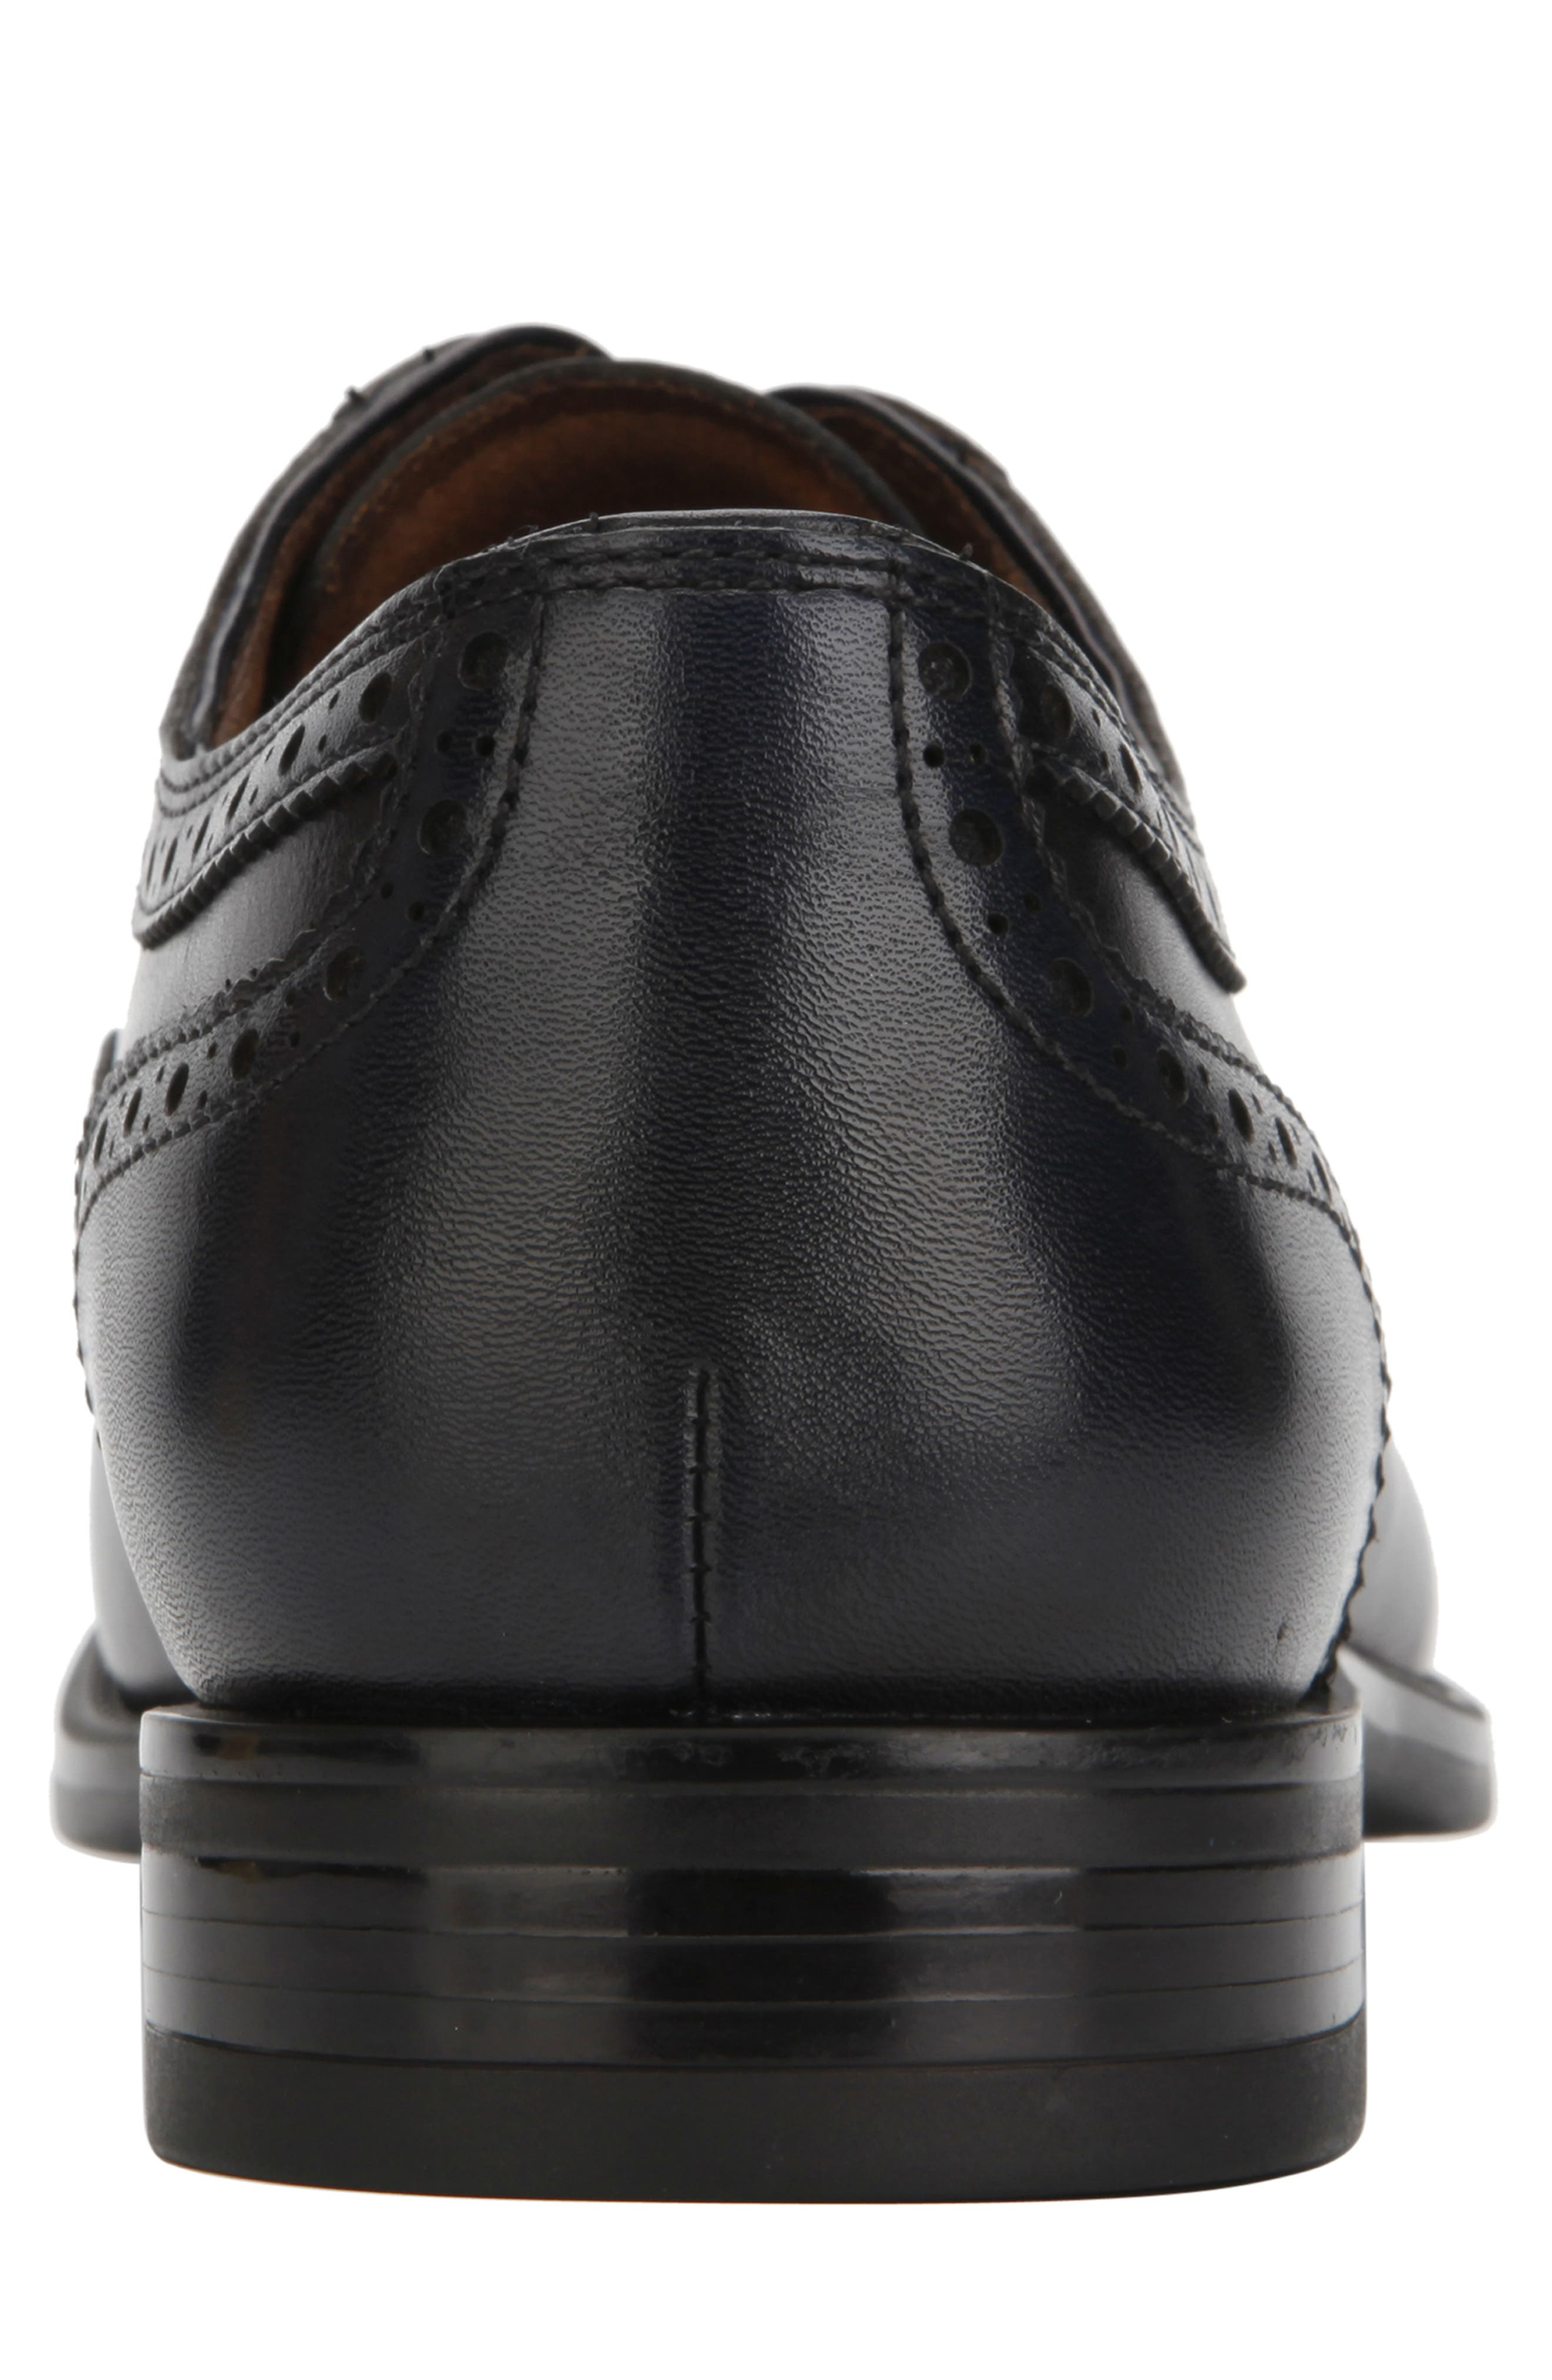 KENNETH COLE NEW YORK, Futurepod Cap Toe Oxford, Alternate thumbnail 5, color, NAVY TUMBLED LEATHER